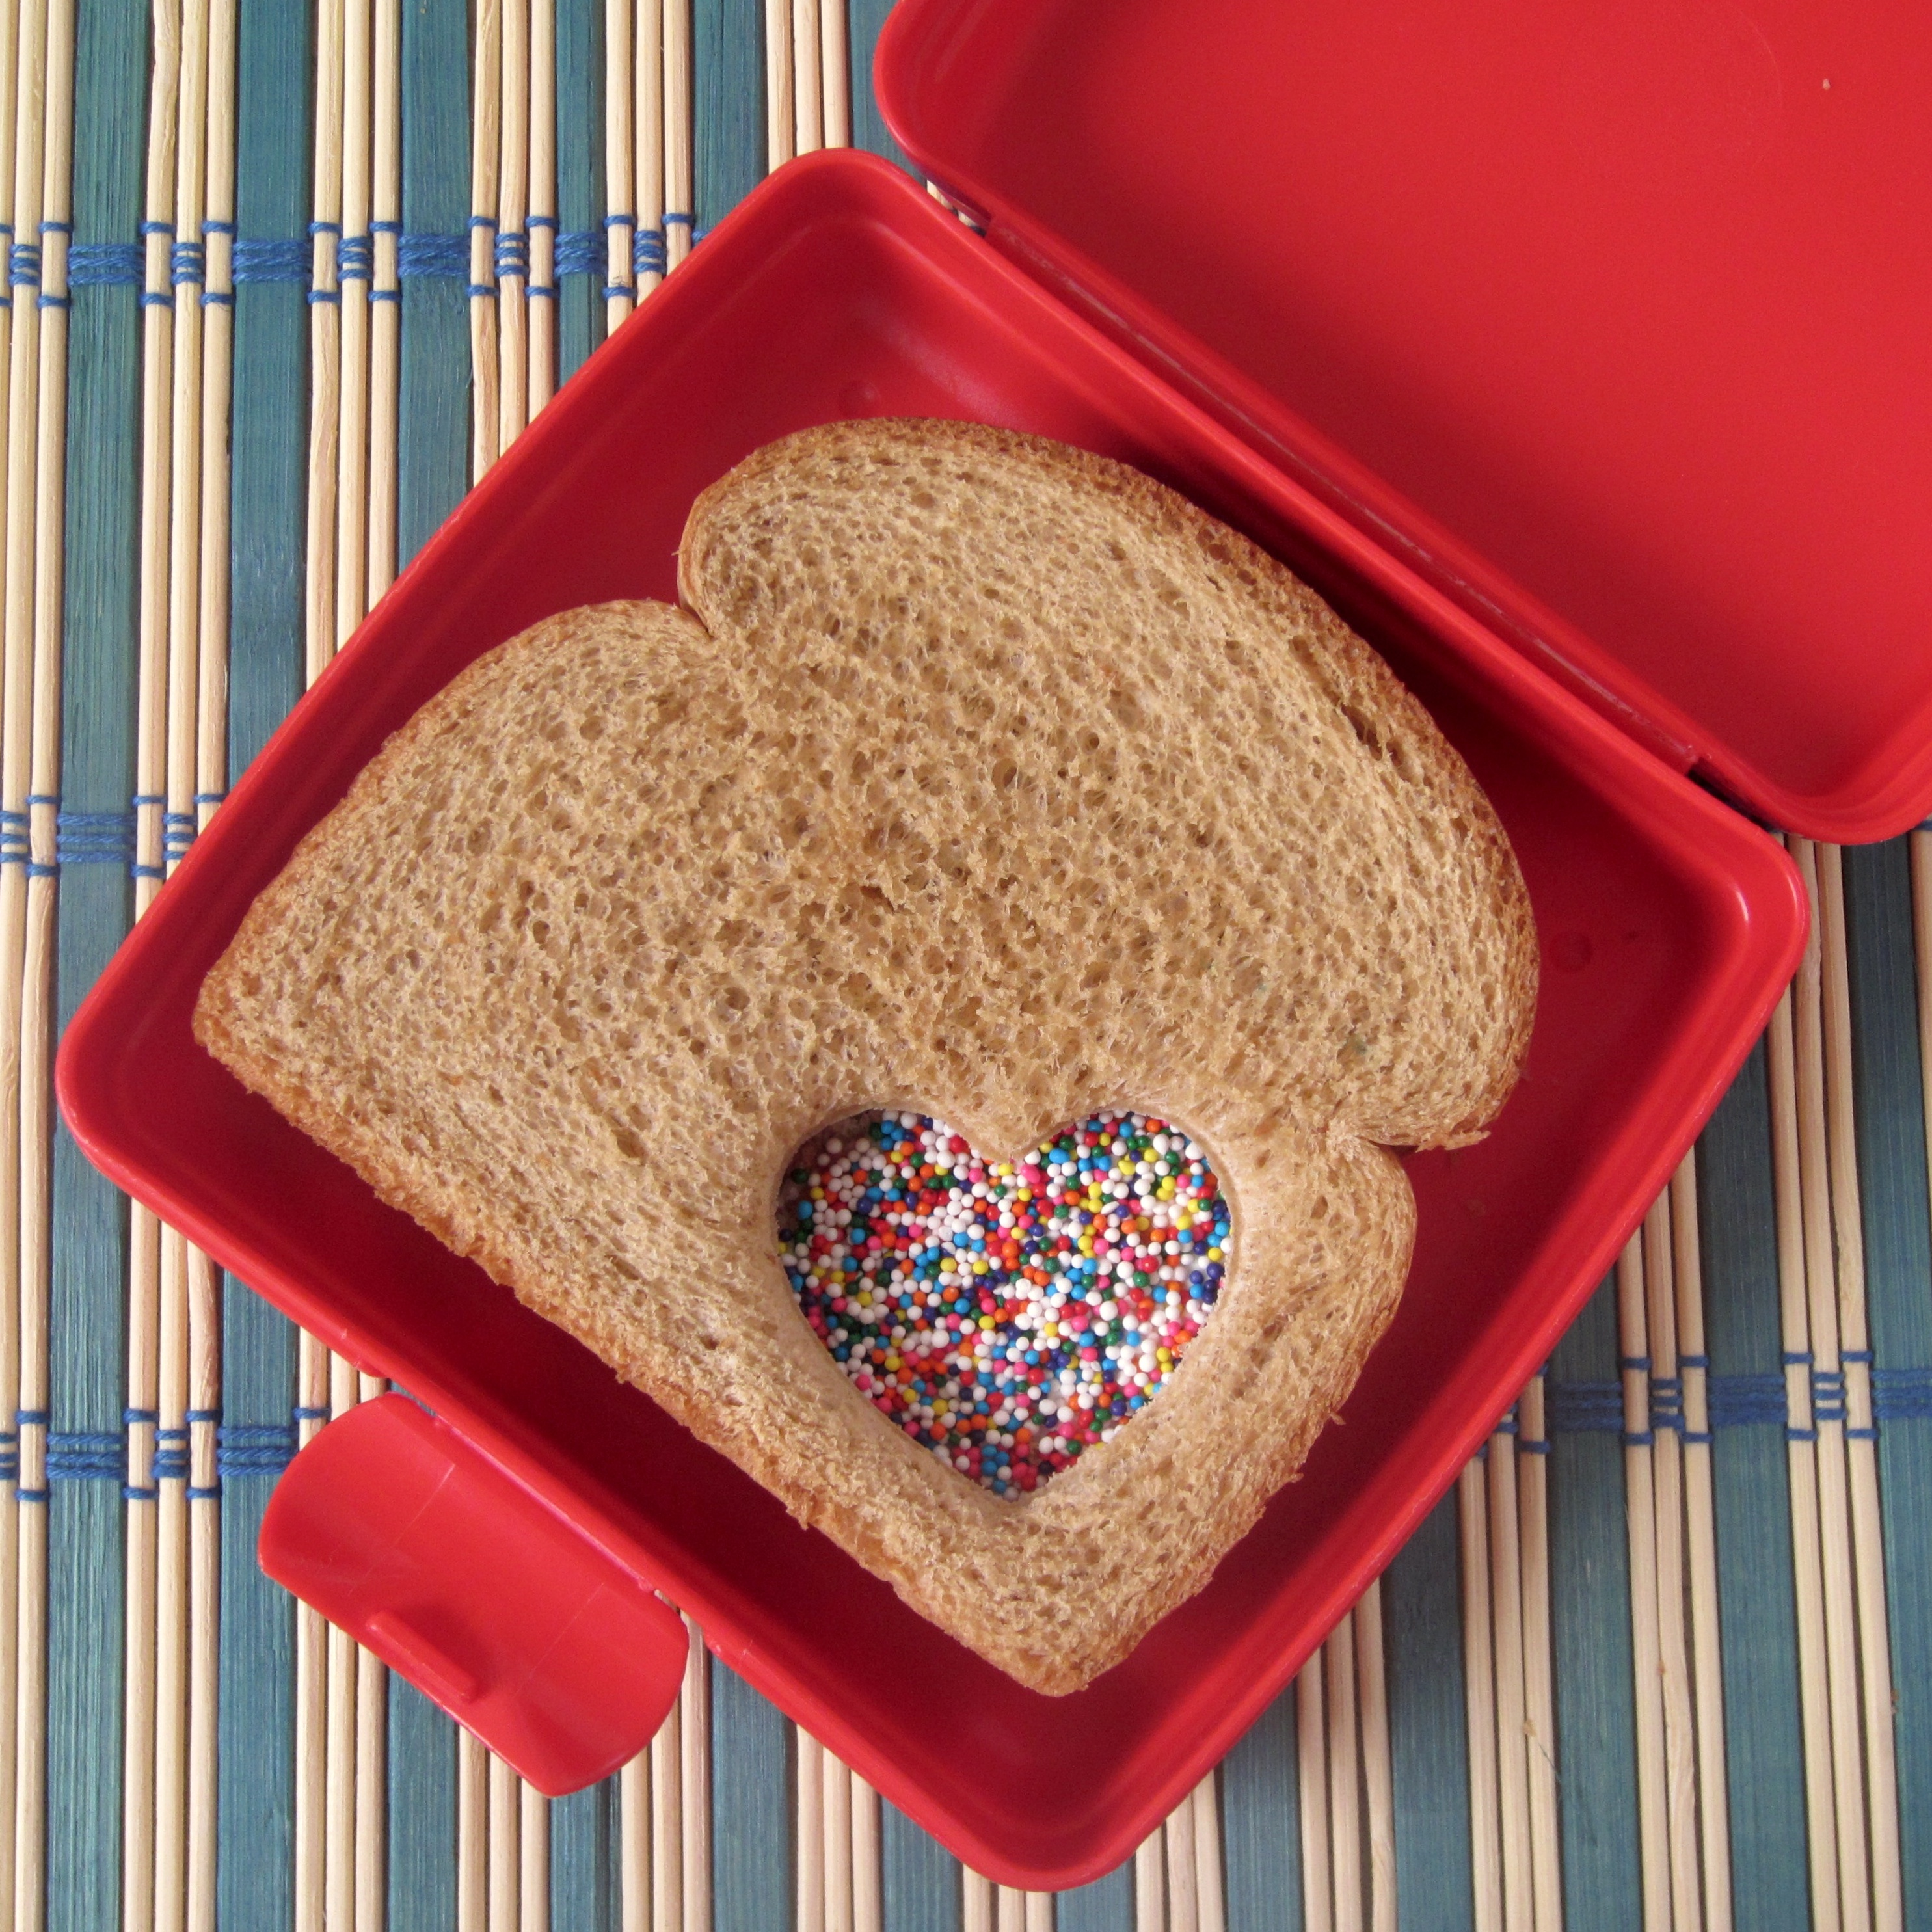 These Sandwiches Work Best With Soft And Sweet Fillers As Listed Above In Order For The Sprinkles To Stick Sandwich Be Sure Check Any Allergy